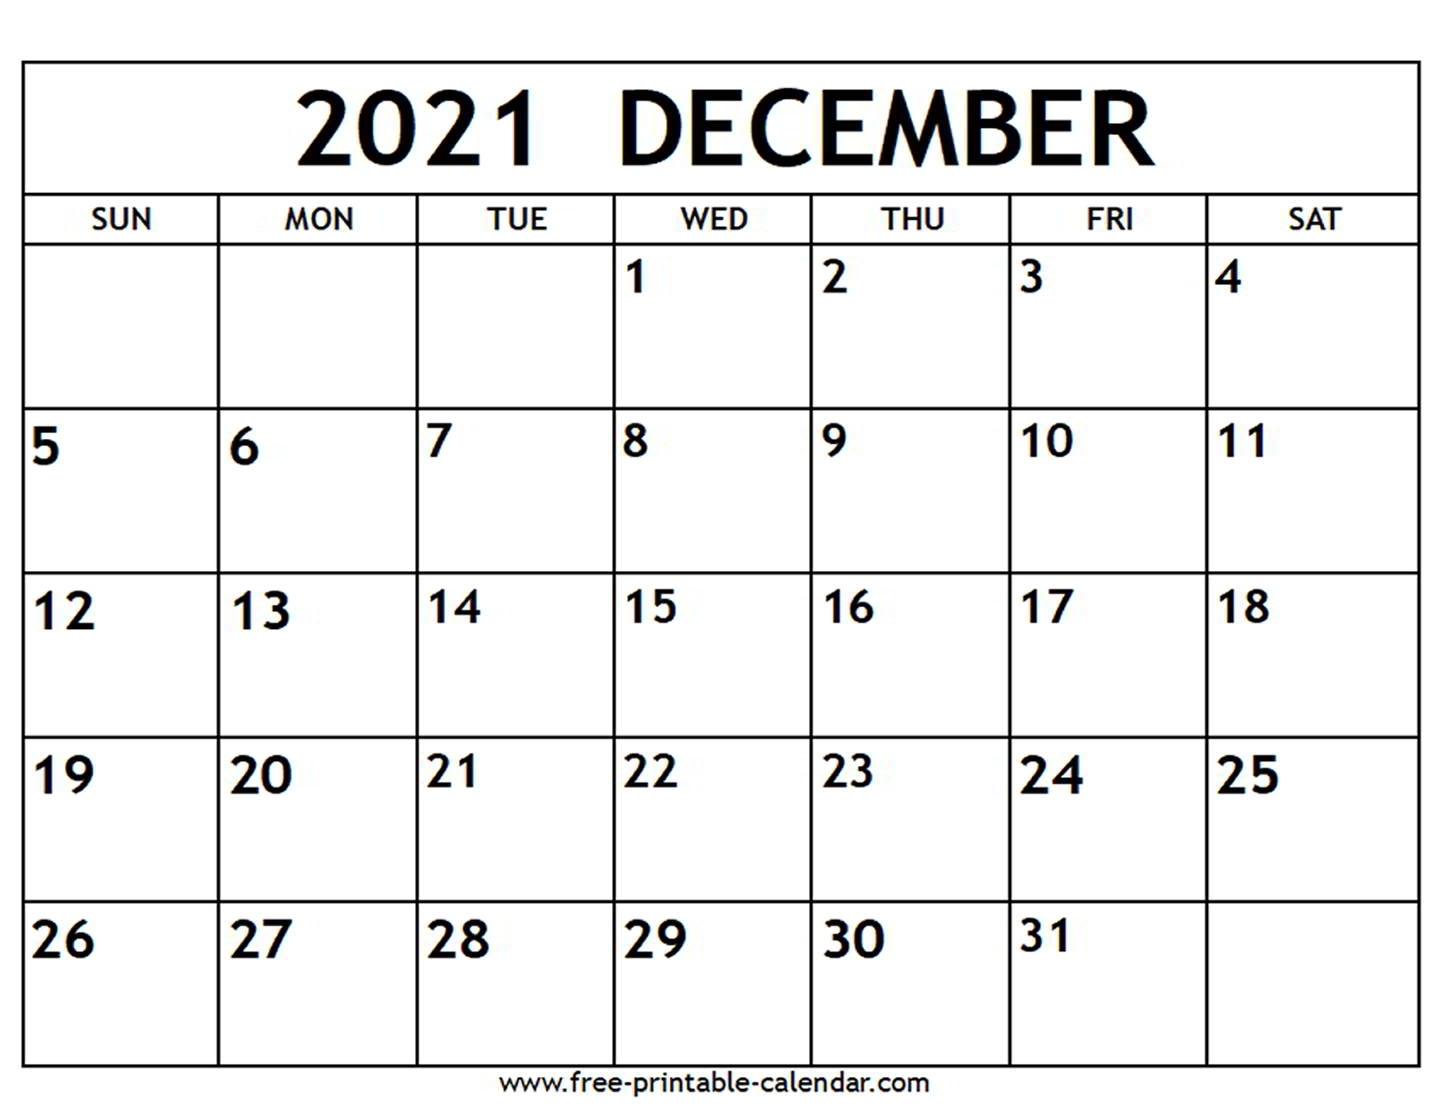 Collect Decembers Calender For 2021